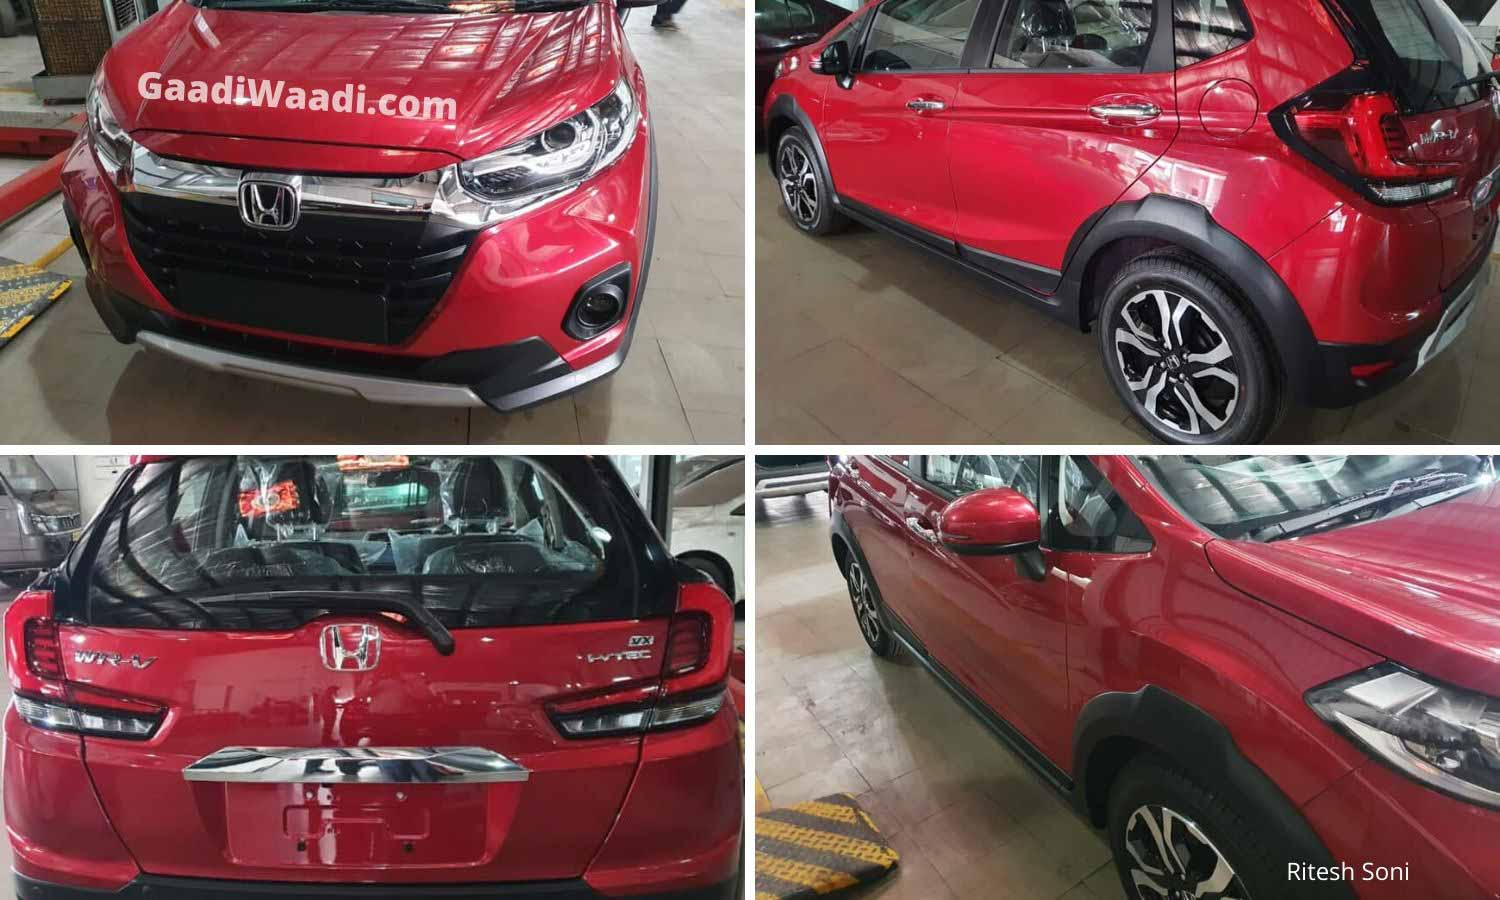 BS6 Honda WR-V Facelift Spotted At Dealership Ahead Of Launch